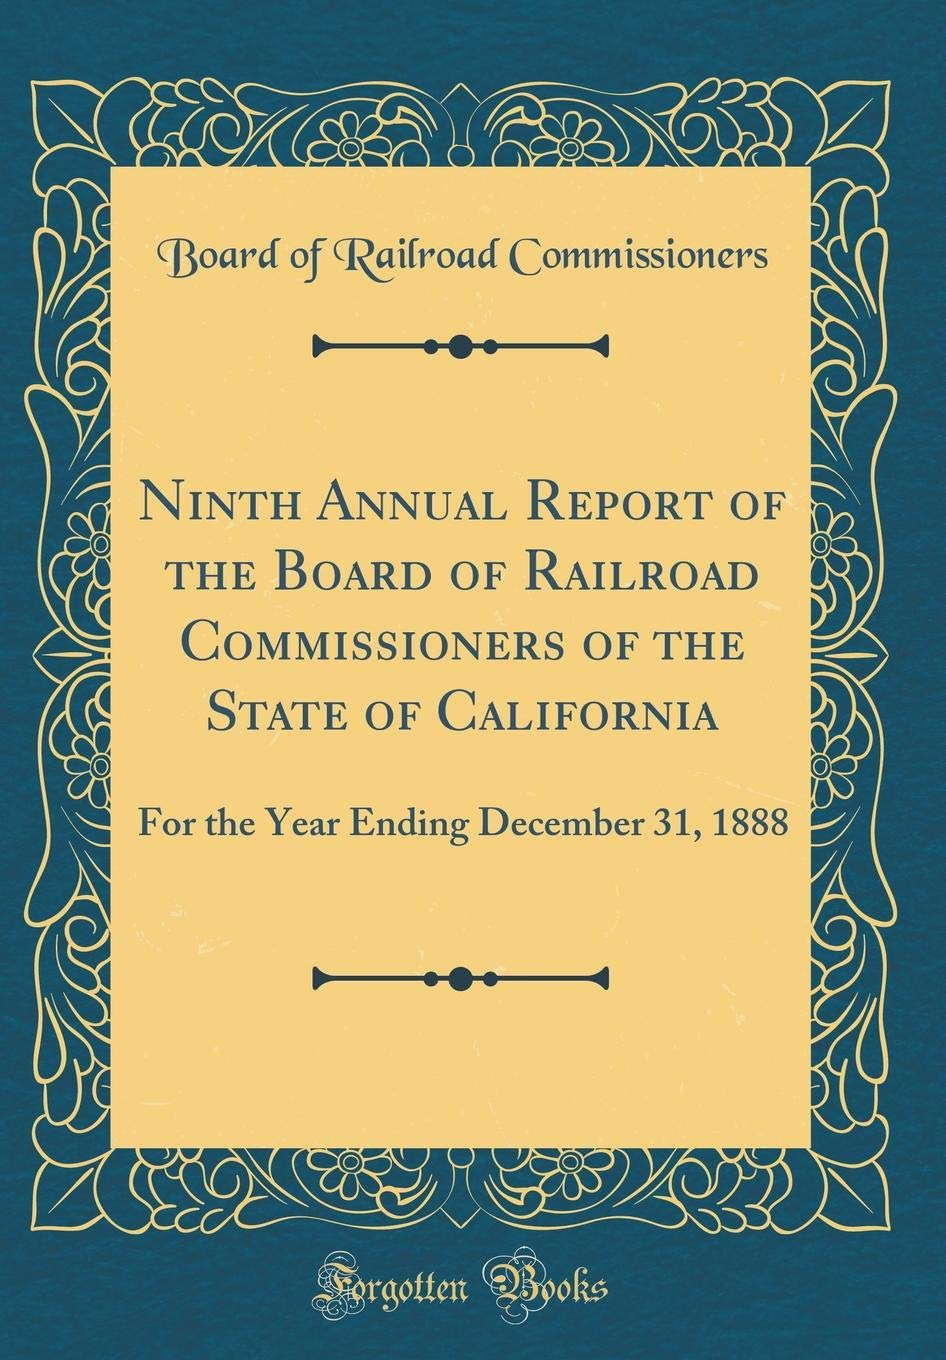 Ninth Annual Report of the Board of Railroad Commissioners of the State of California: For the Year Ending December 31, 1888 (Classic Reprint) ebook